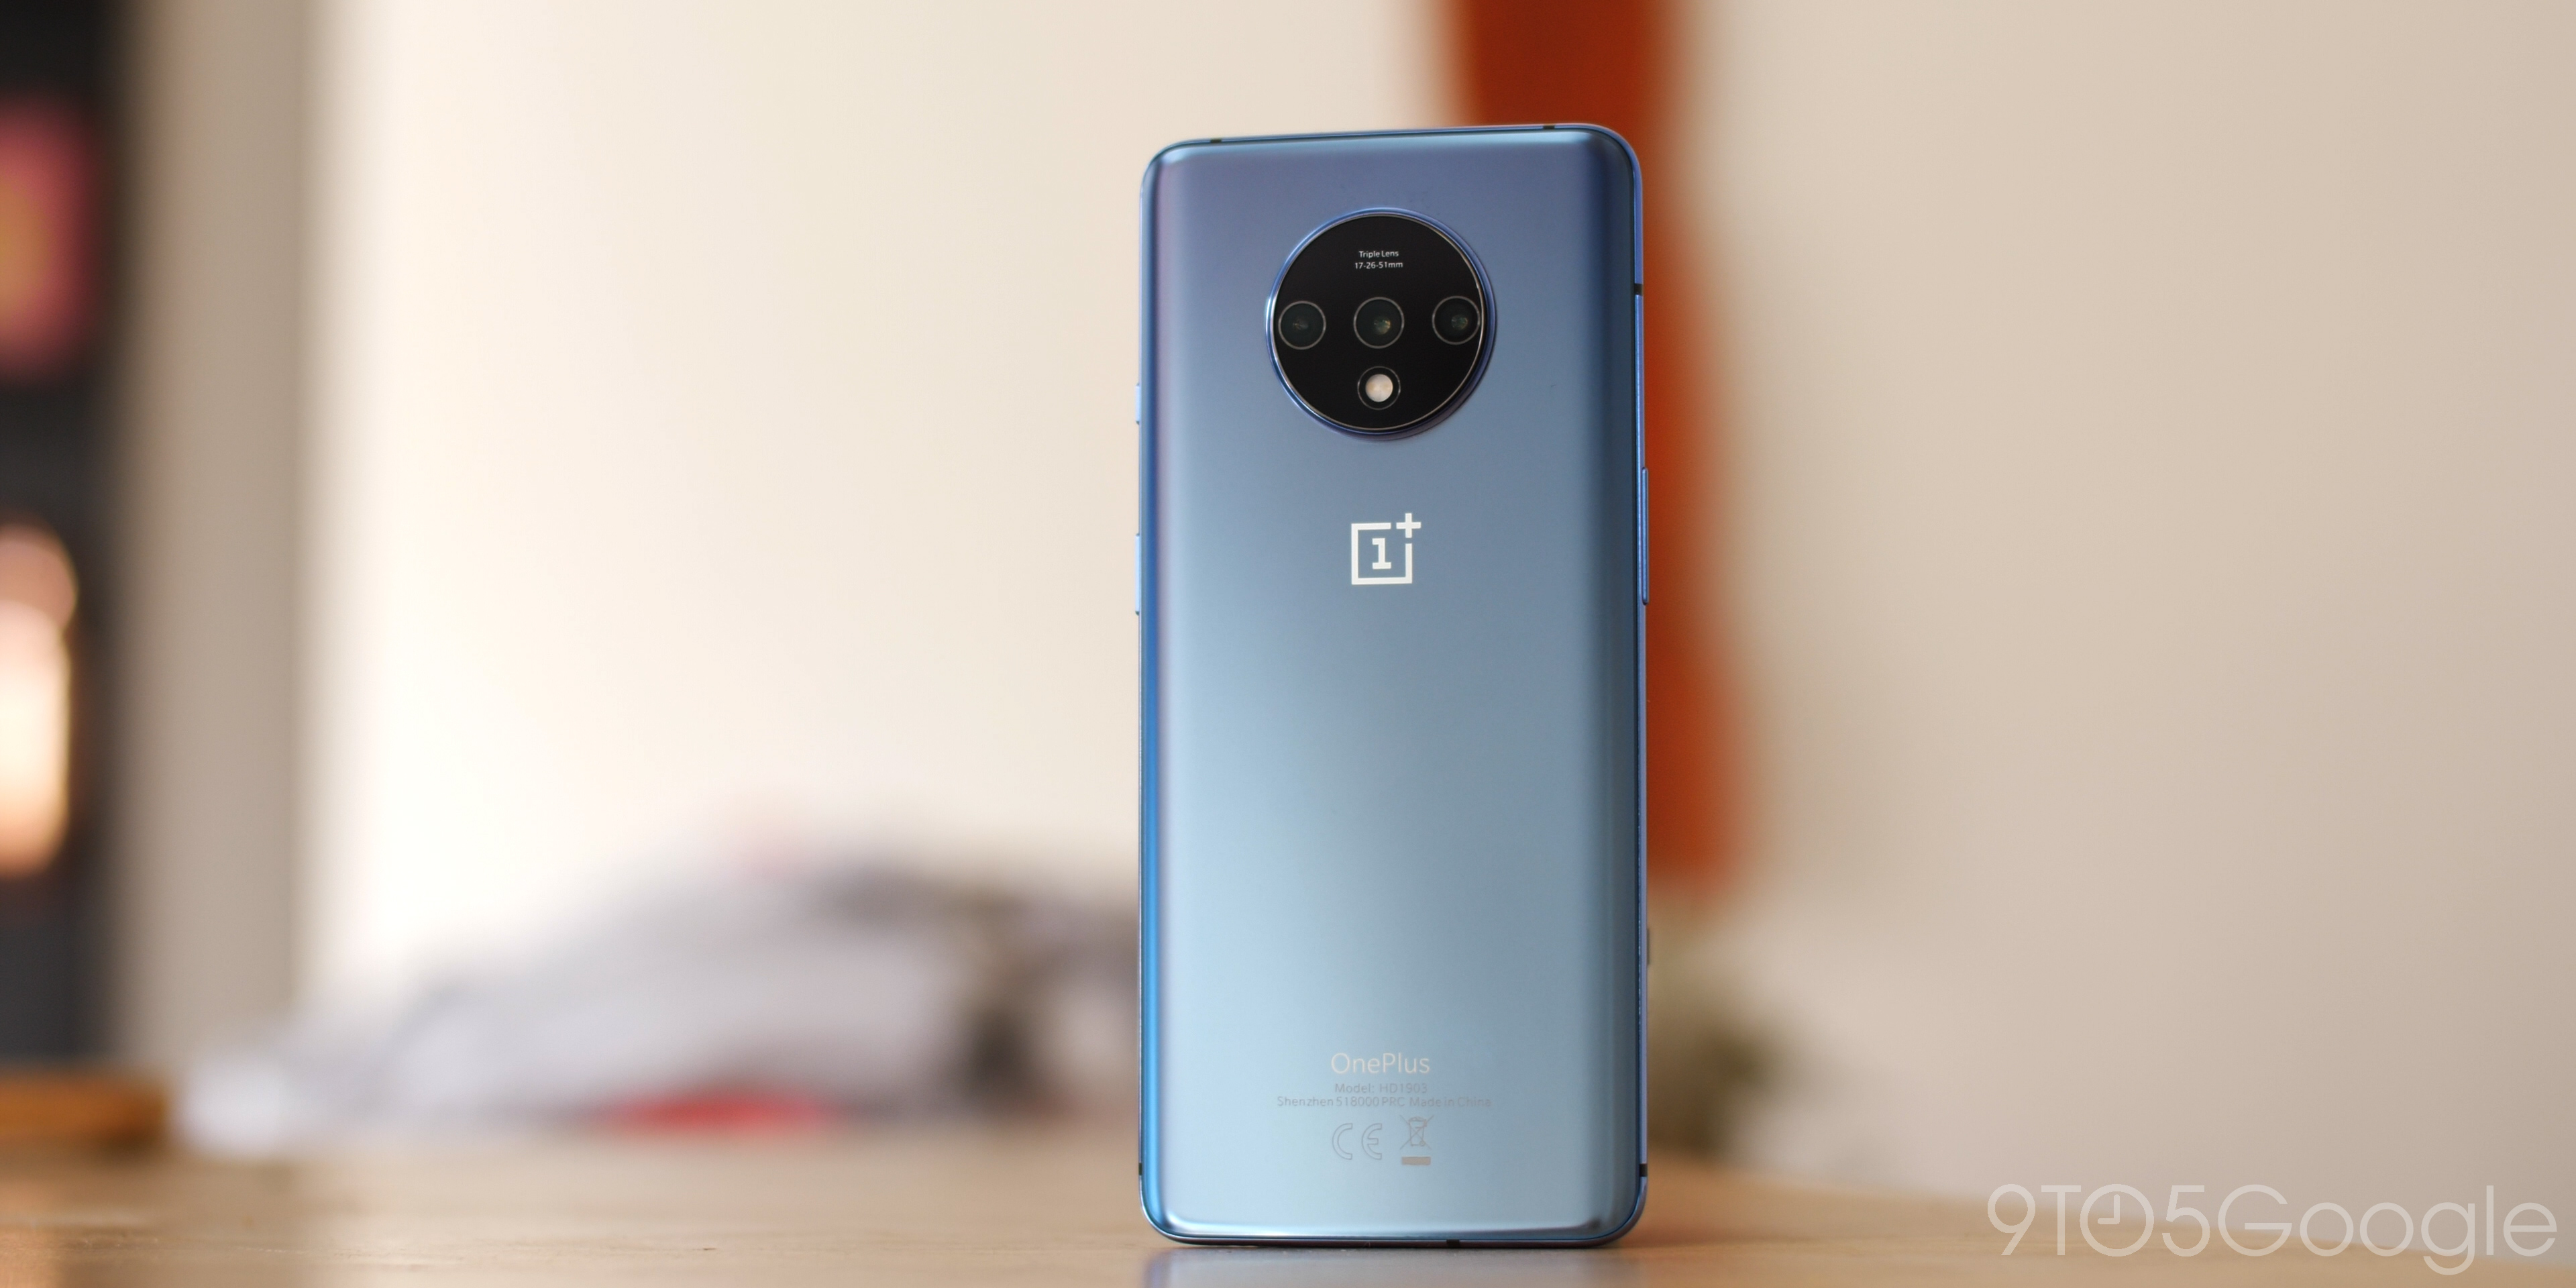 OnePlus 7T review - design